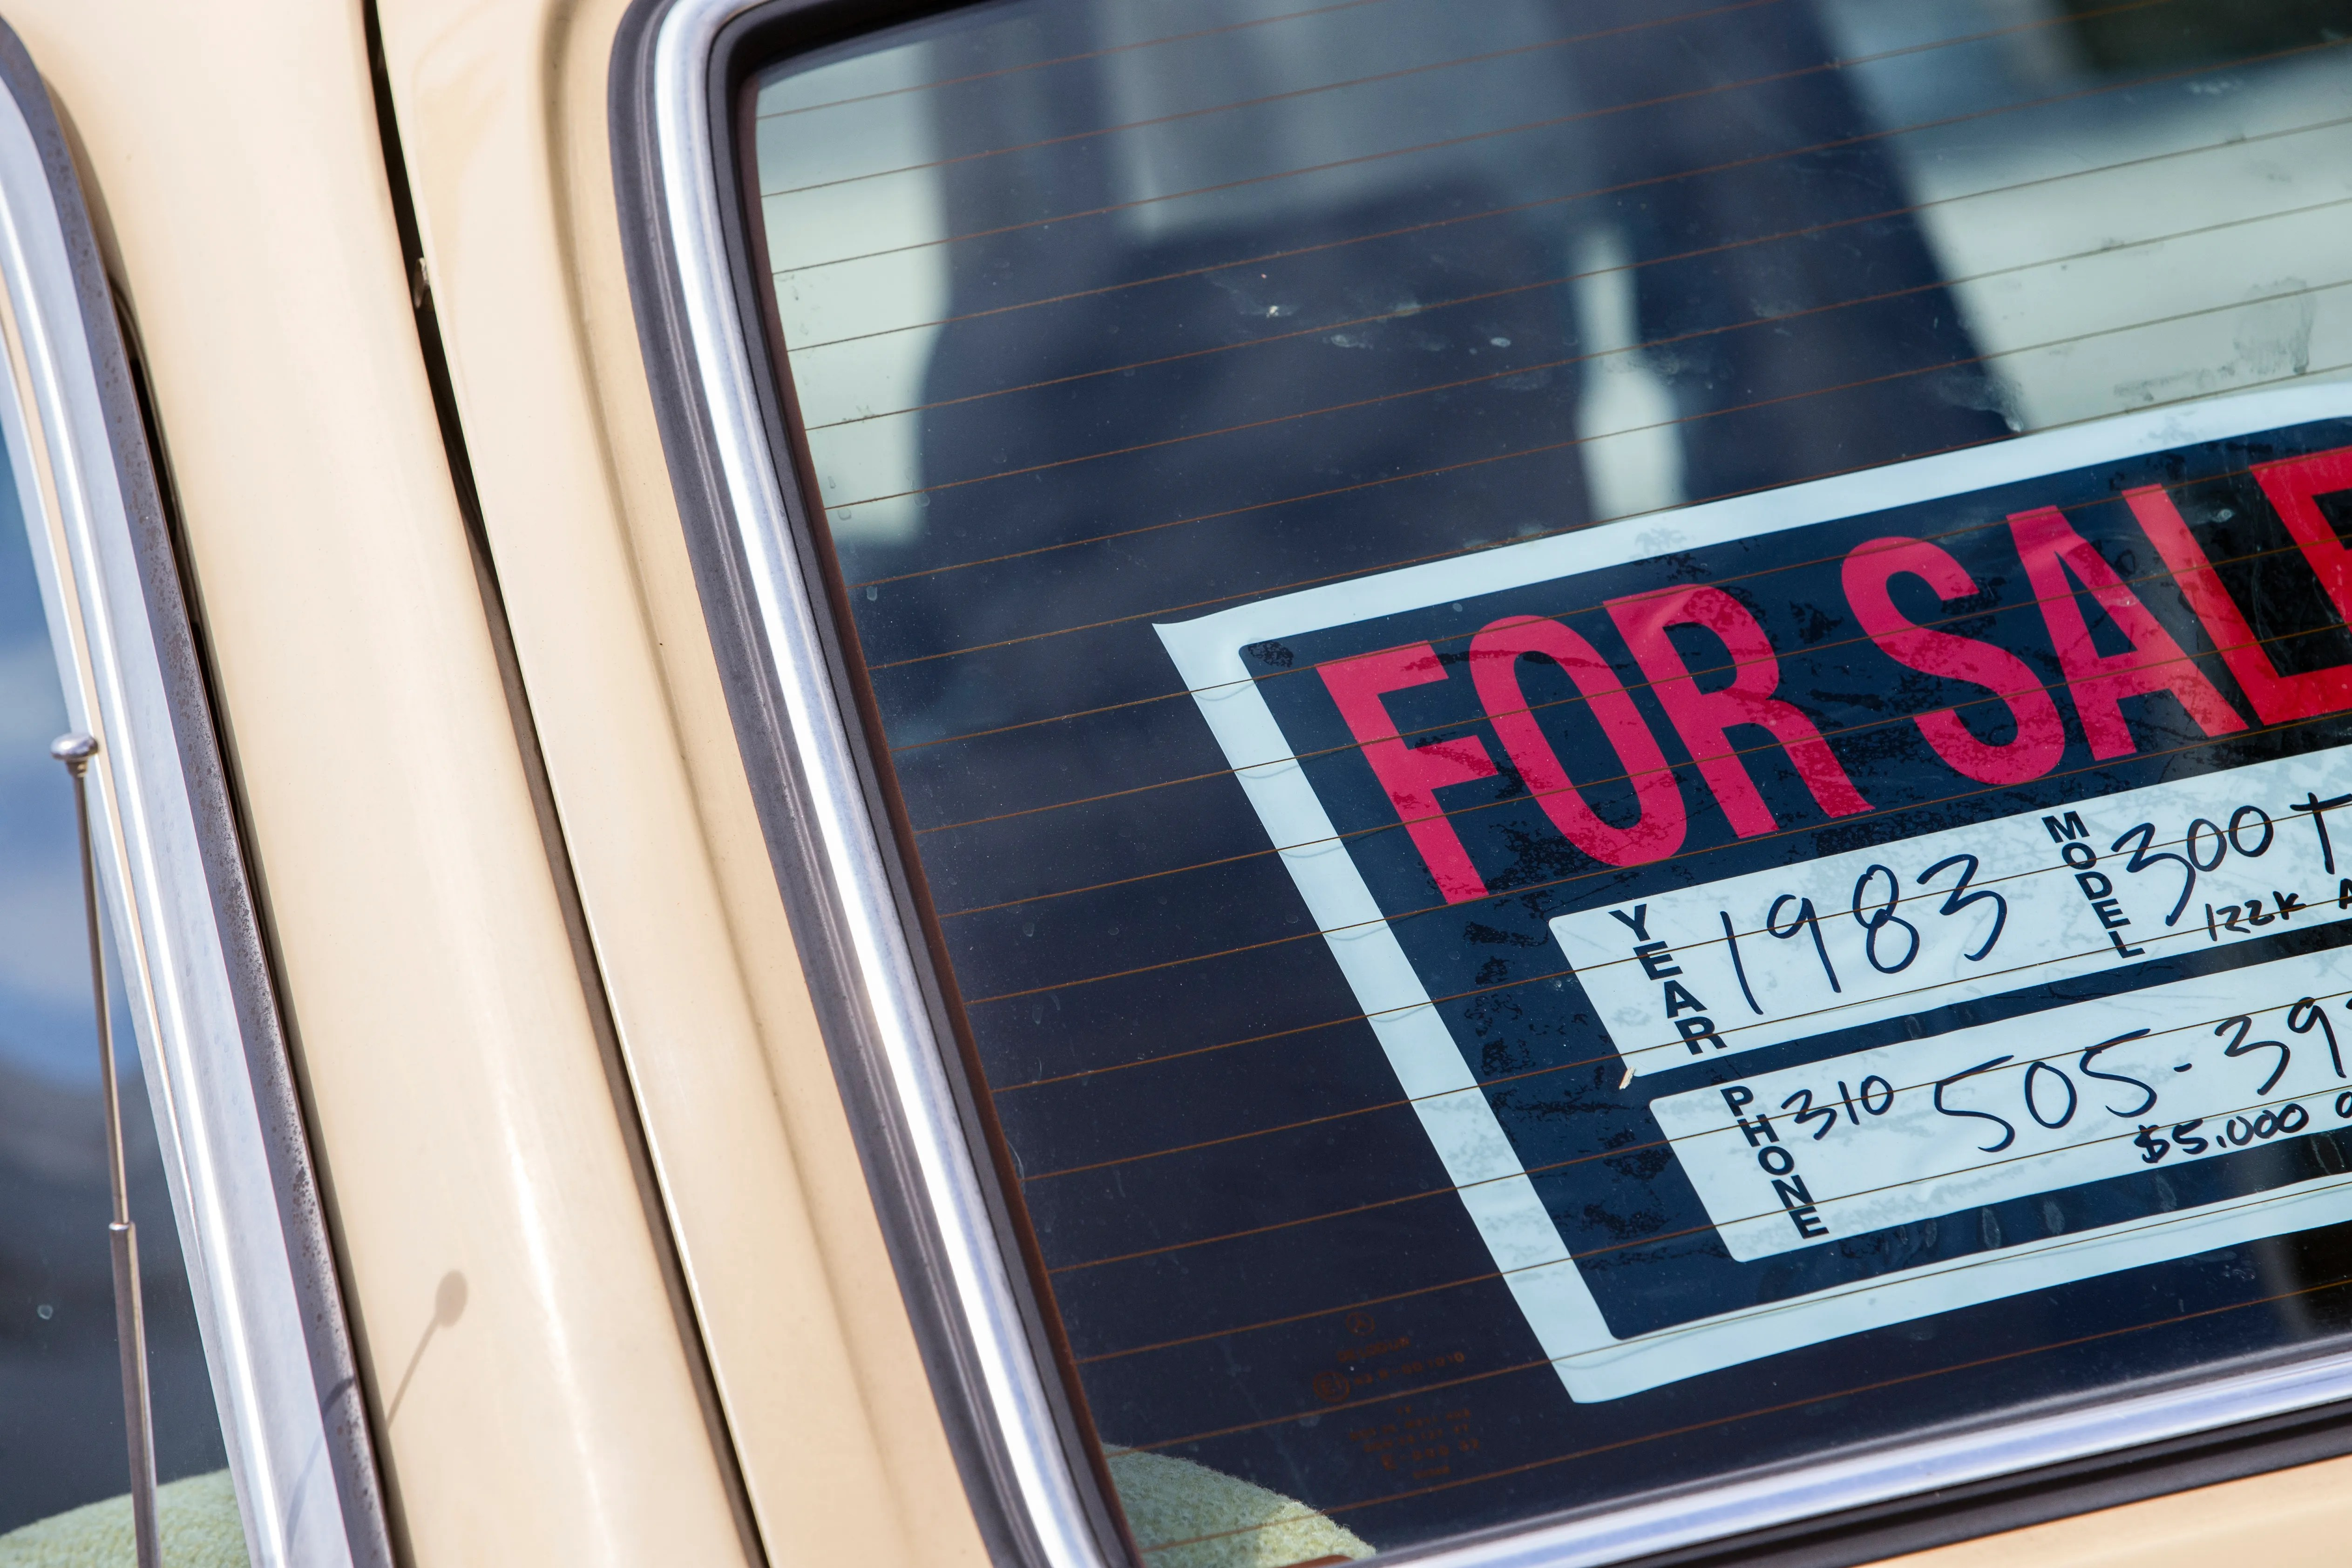 The best way to buy a used car from a private party The Seattle Times